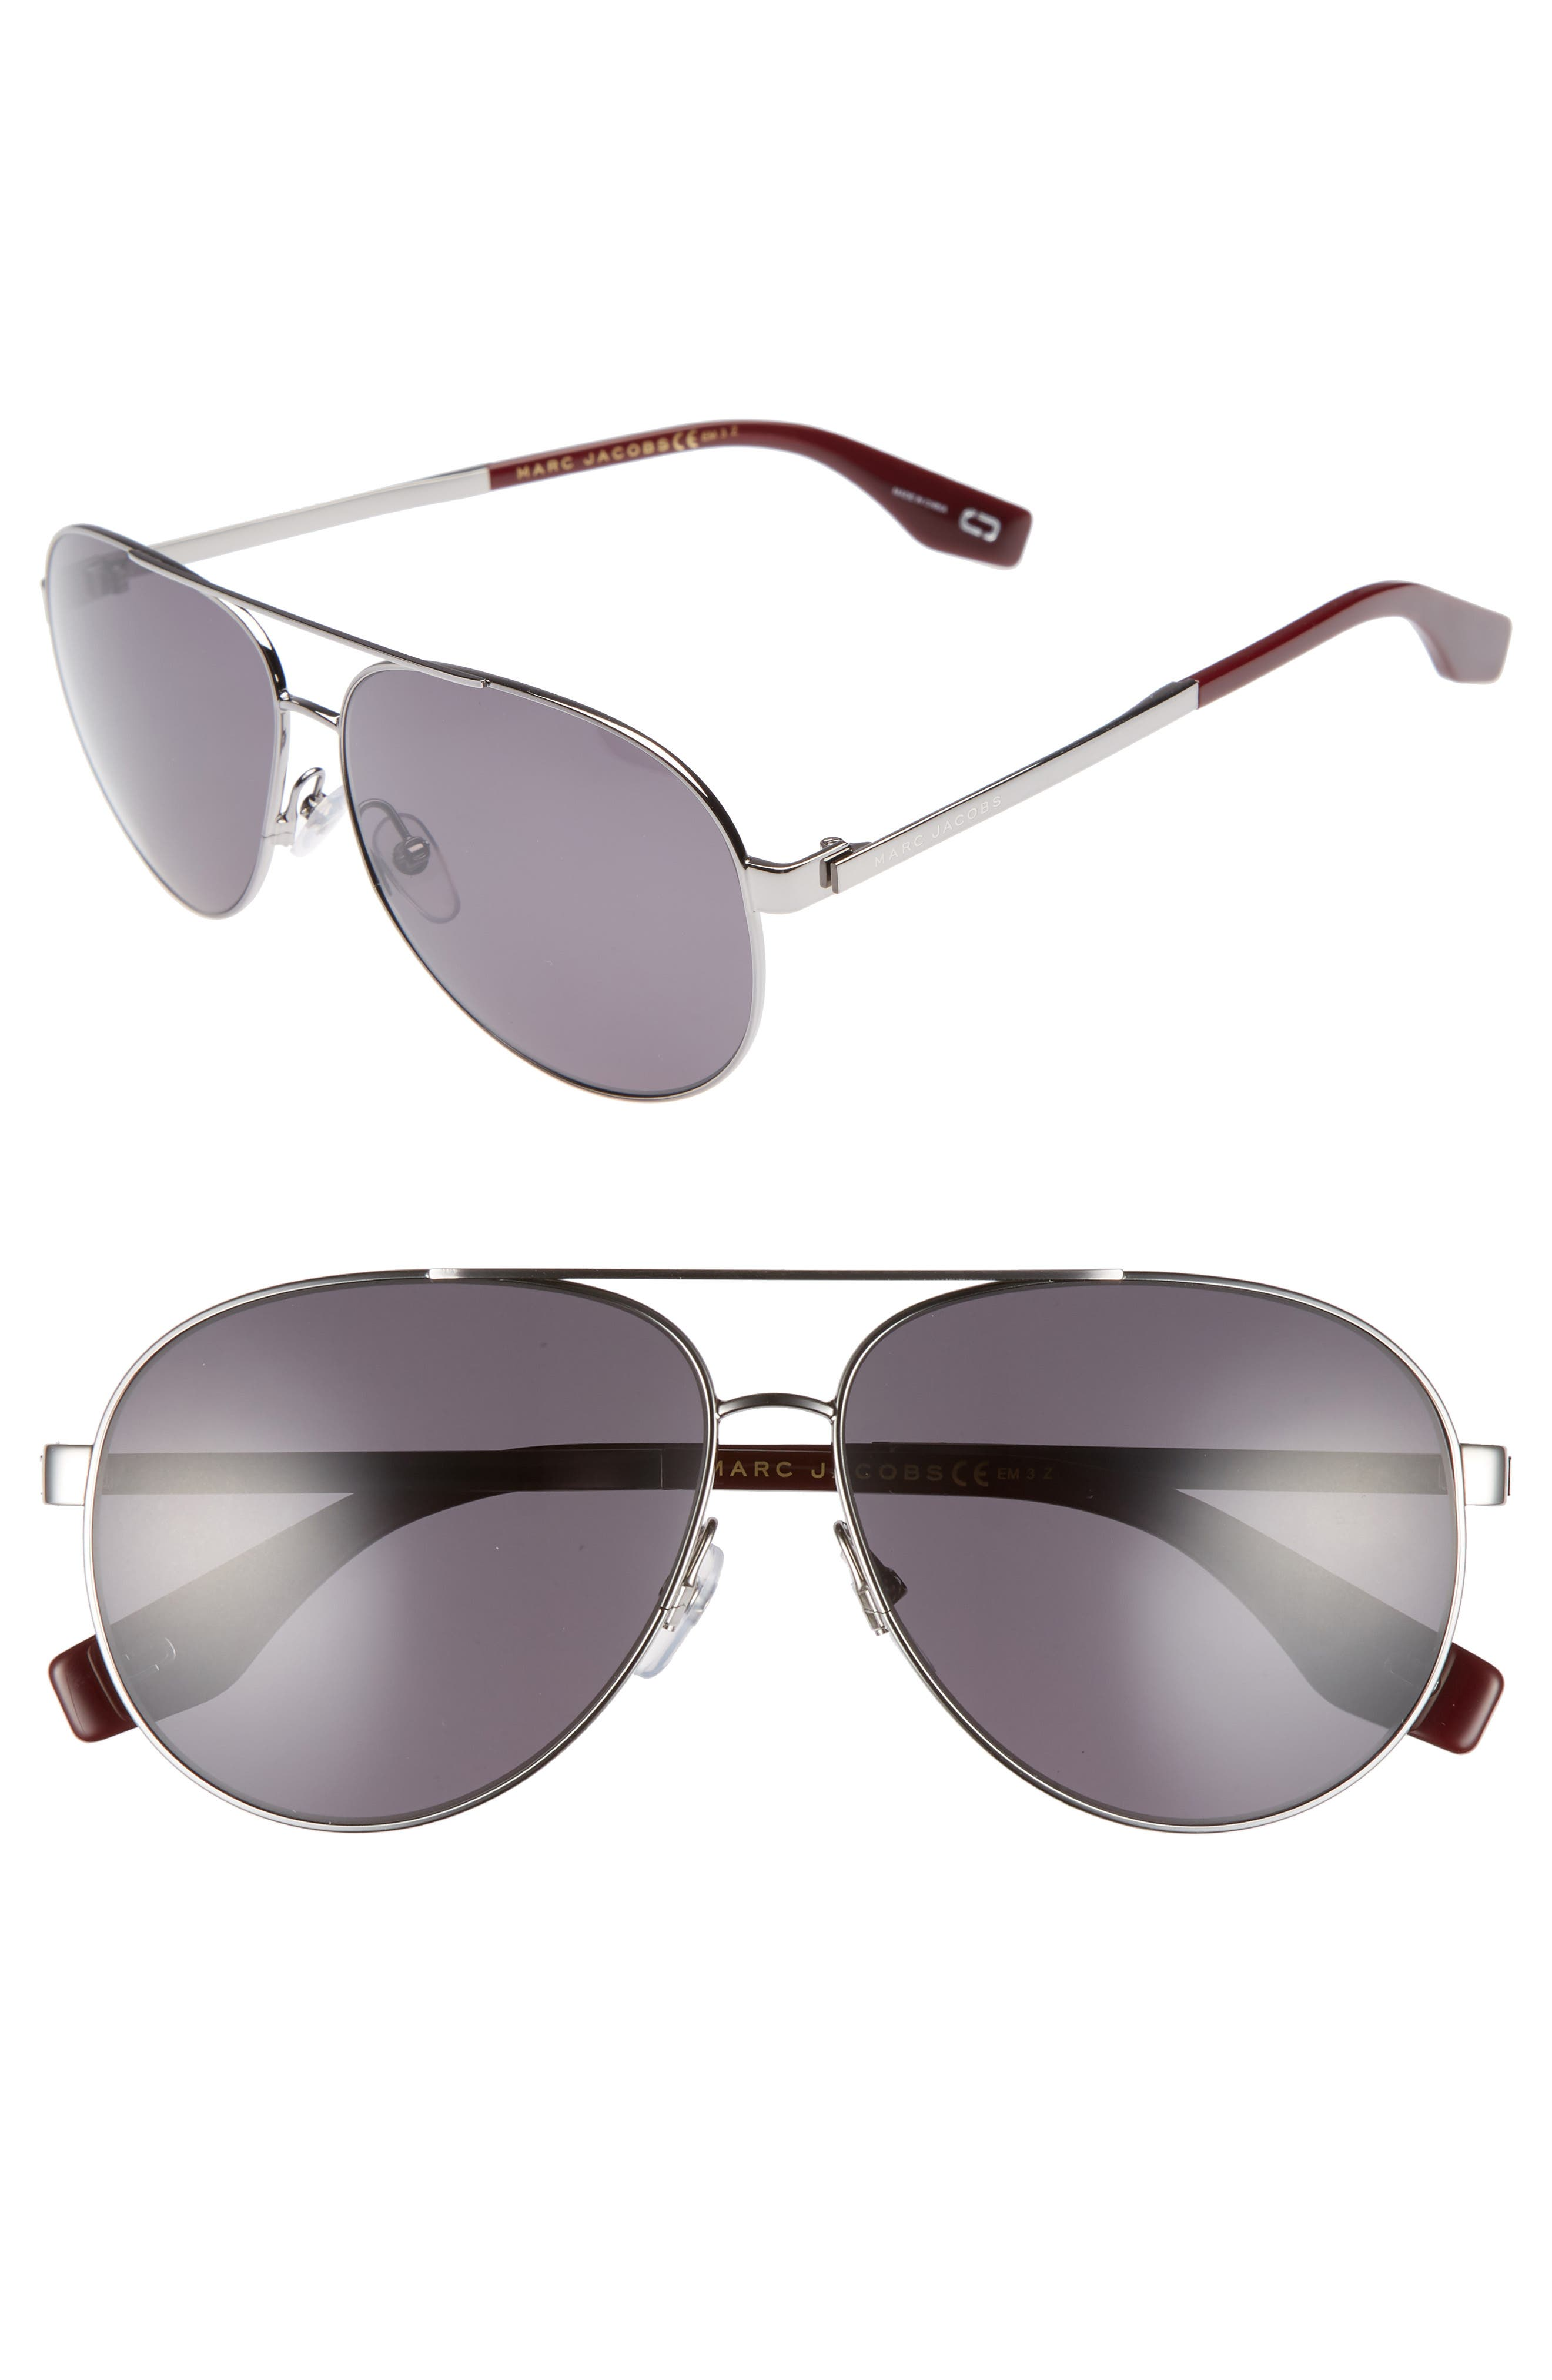 MARC JACOBS 61mm Polarized Metal Aviator Sunglasses